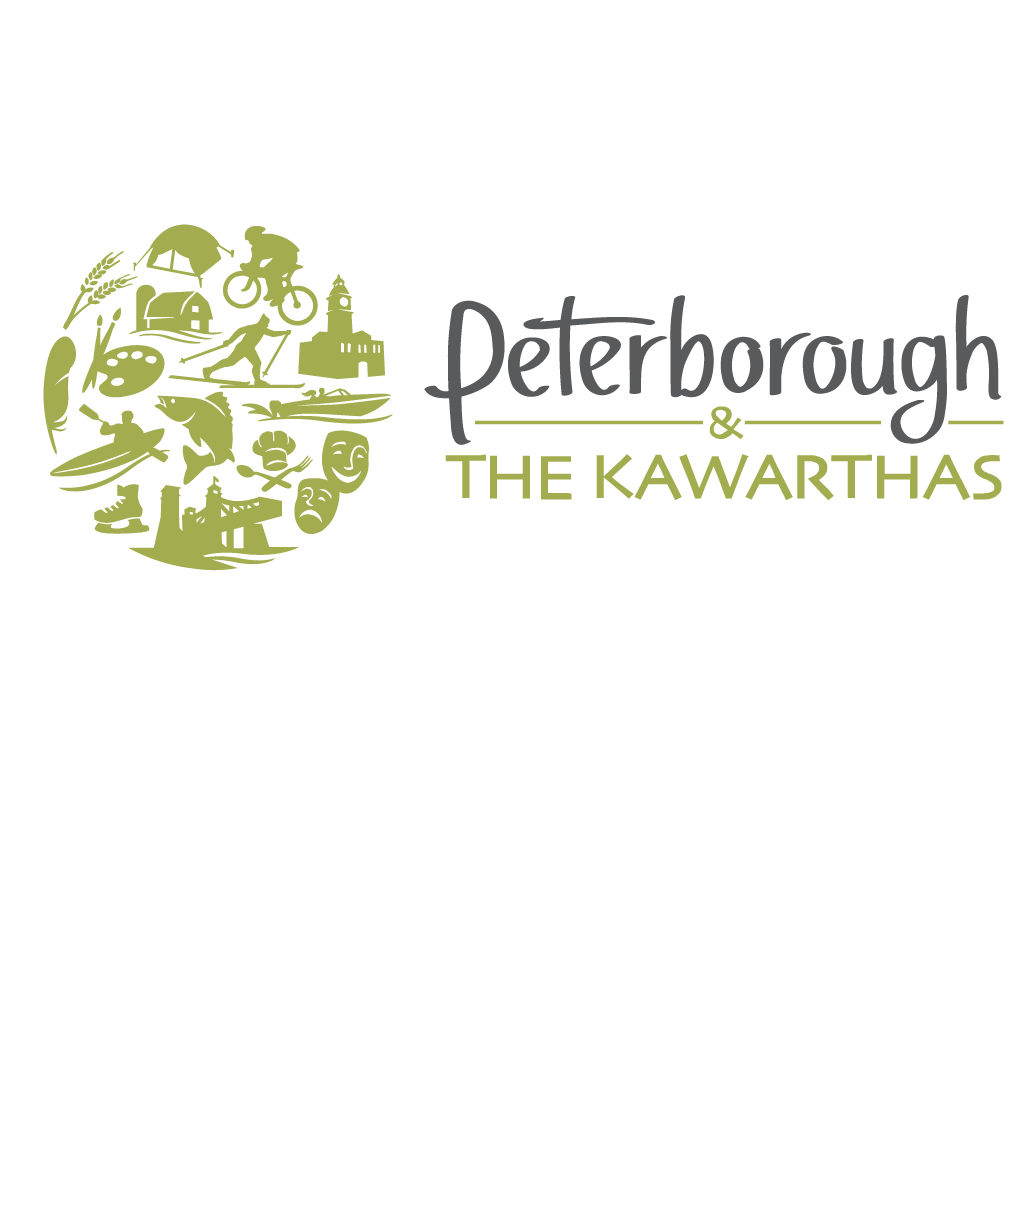 Peterborough-Kawartha